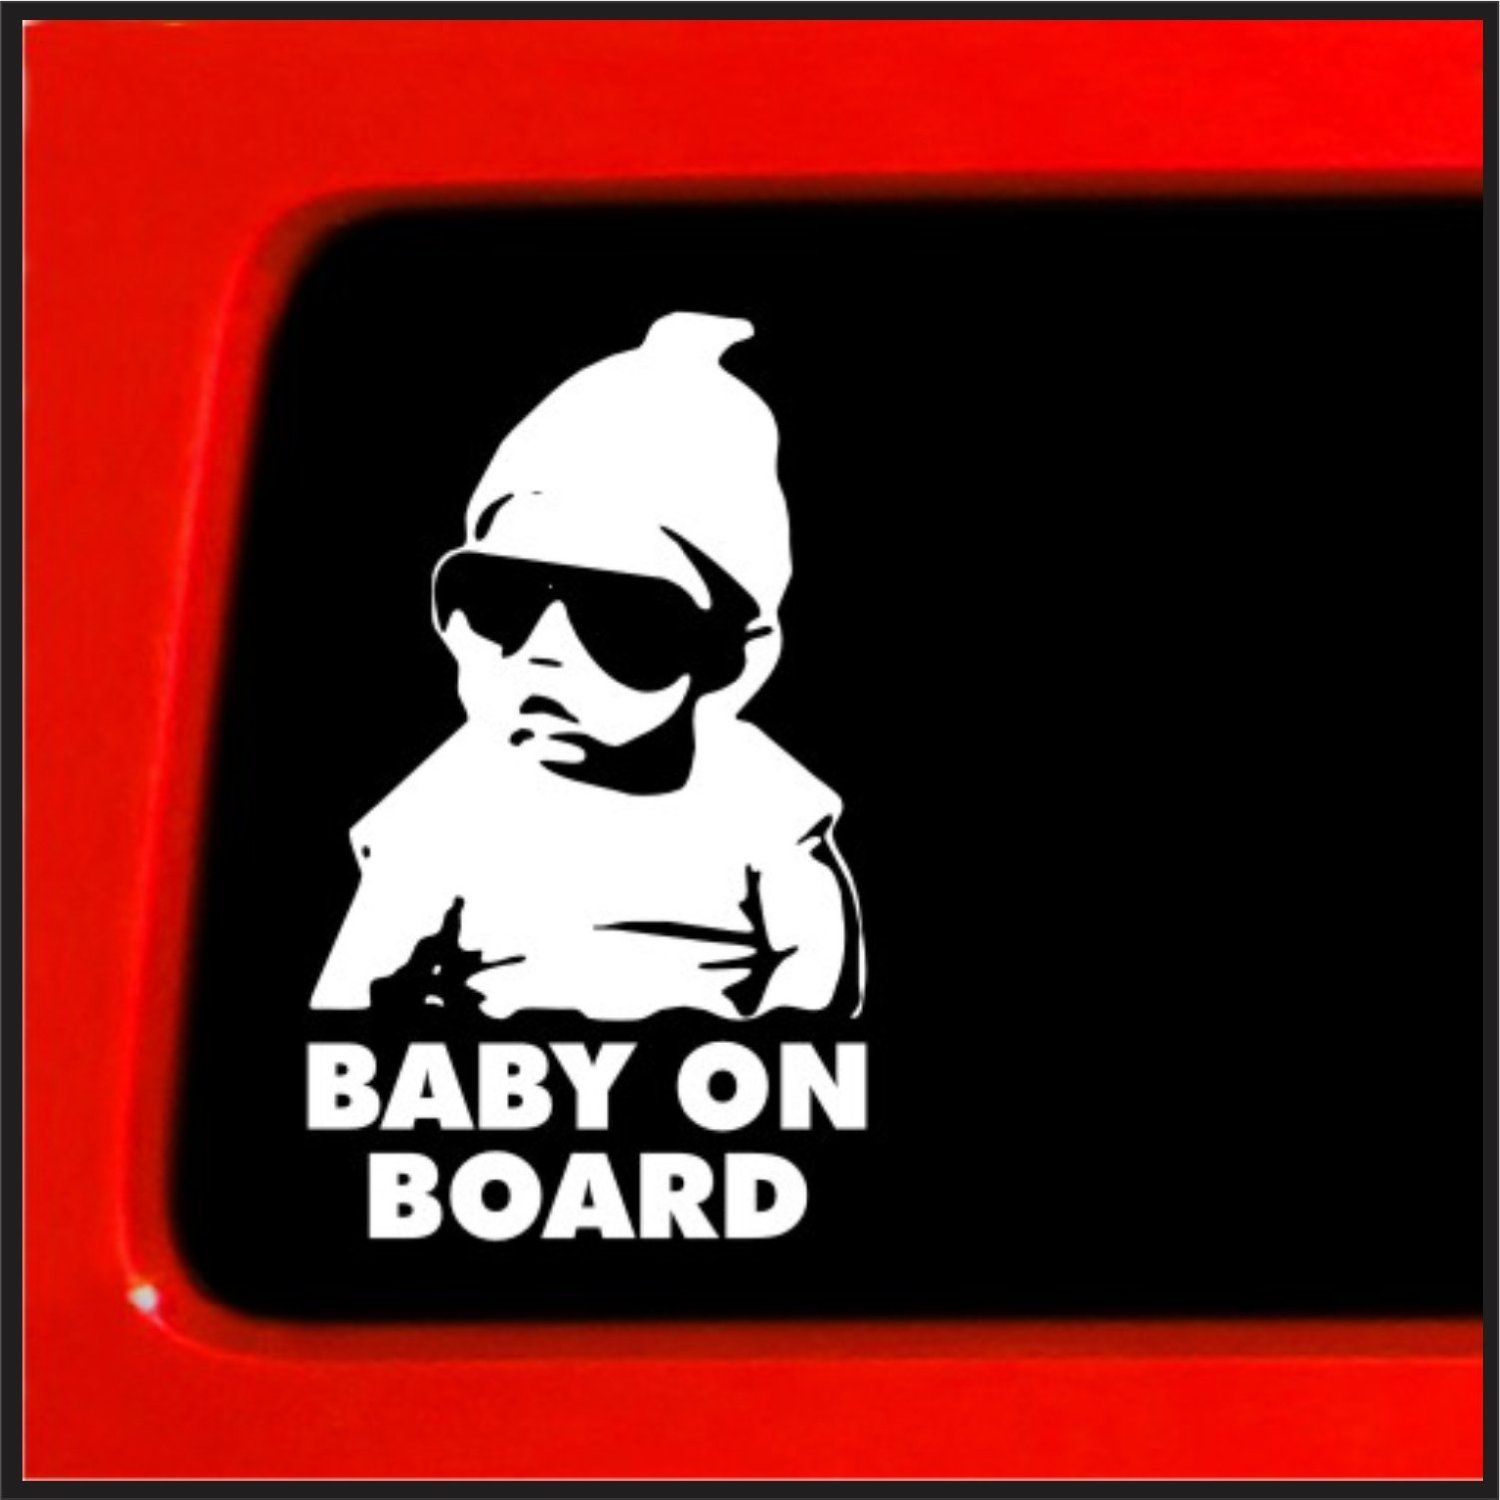 Amazoncom Baby On Board Carlos Hangover Funny Car Vinyl Sticker - Vinyl stickers on cars